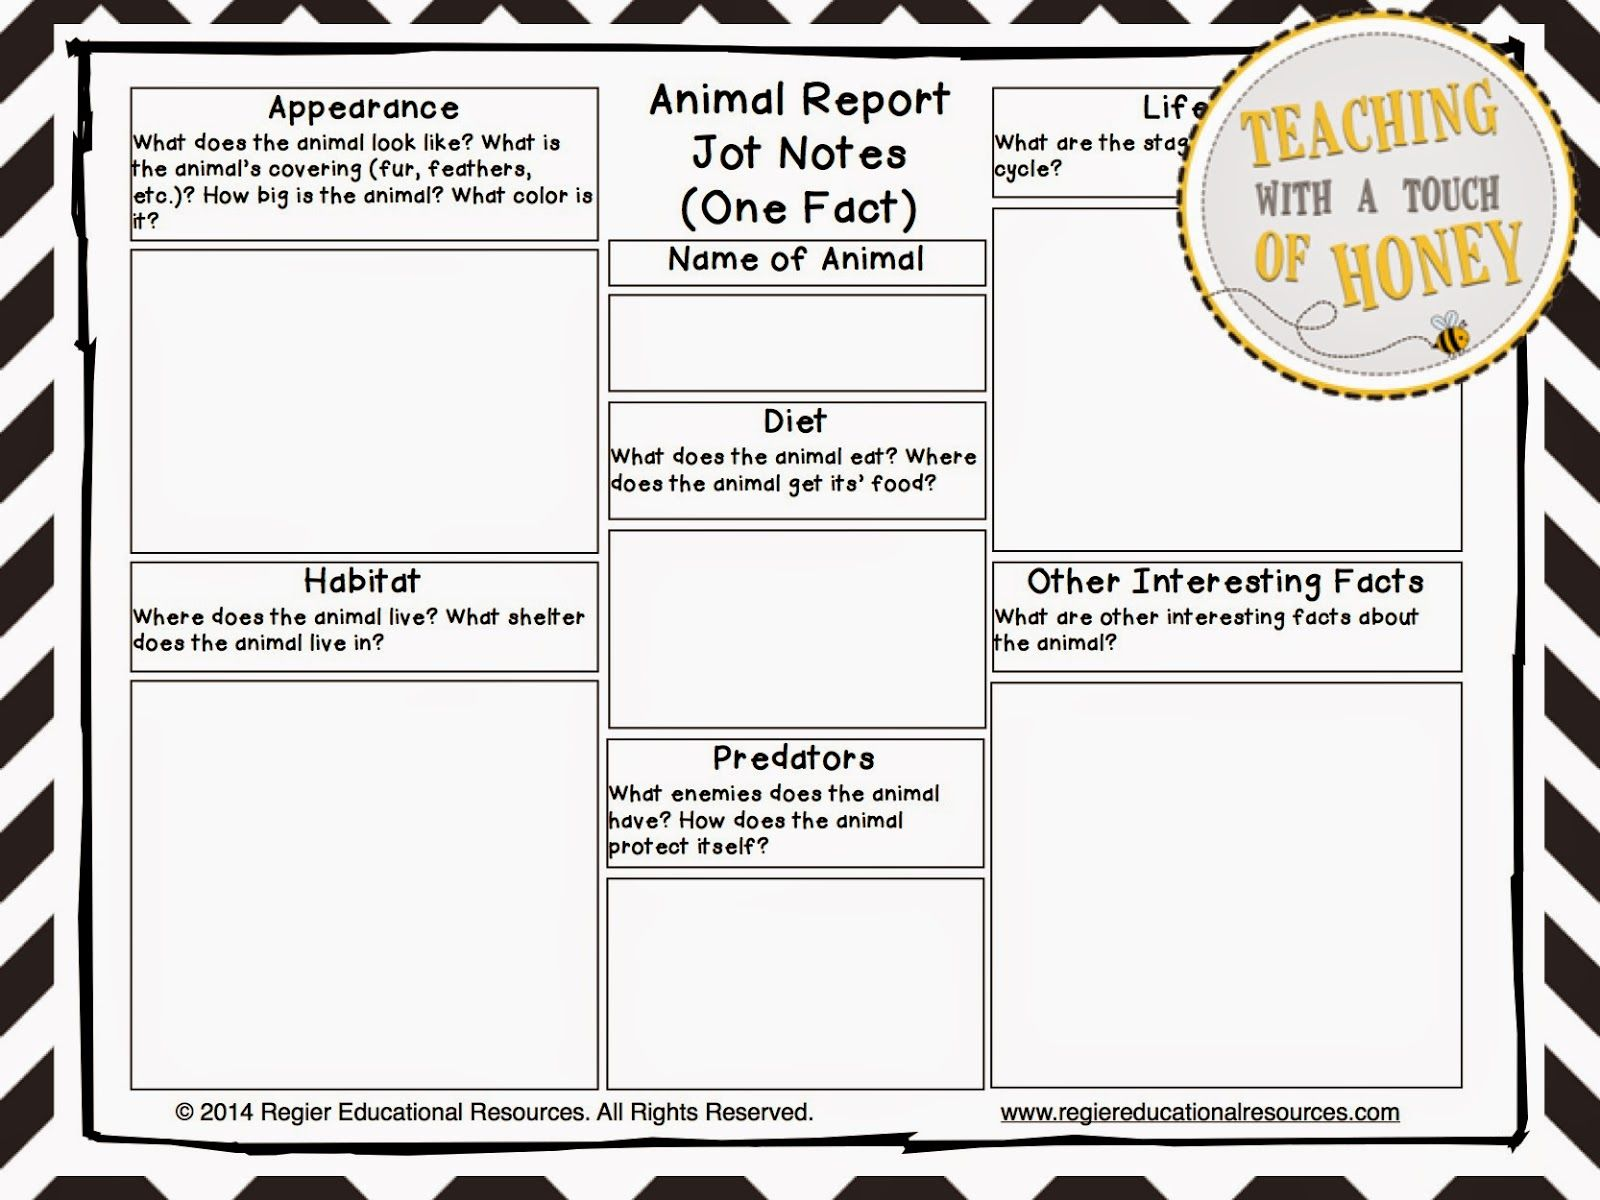 Report Writing Can Be Challenging For Students. Use These Differentiated Animal  Report Writing Templates With Your Students To Meet Their Diverse Learning  ... Design Inspirations